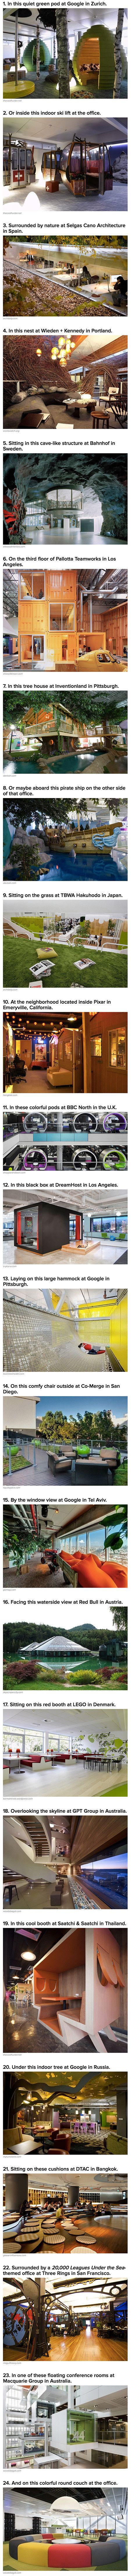 Here are some amazing offices and workplaces that think outside the box.